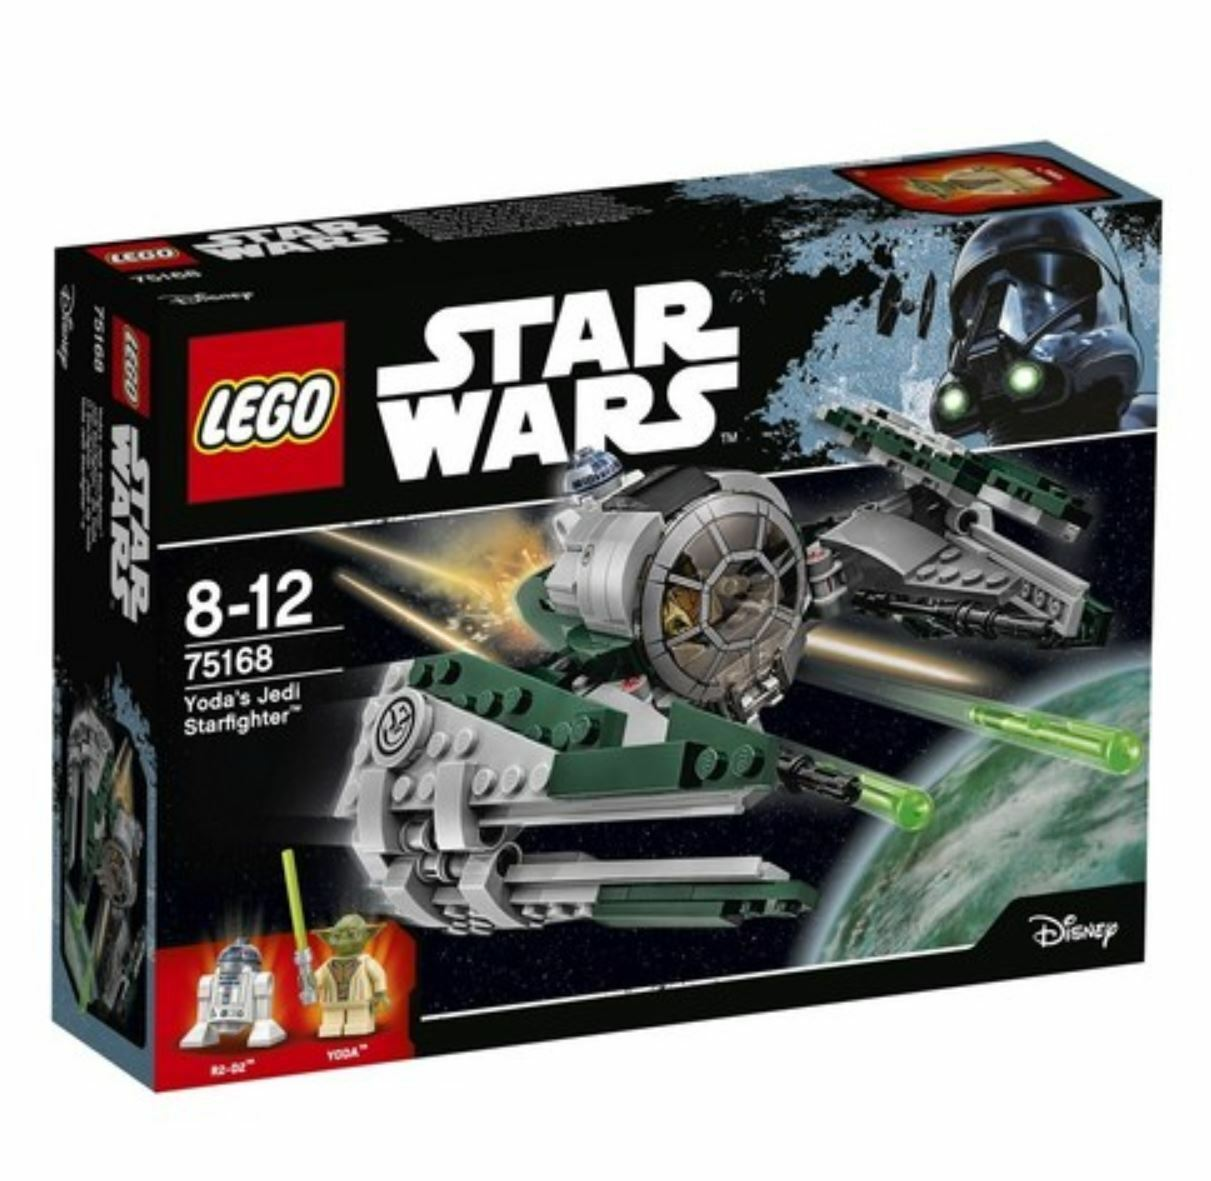 [LEGO] STARWARS Yoda's Jedi Starfighter™ 75168 2017 Version Free Shipping